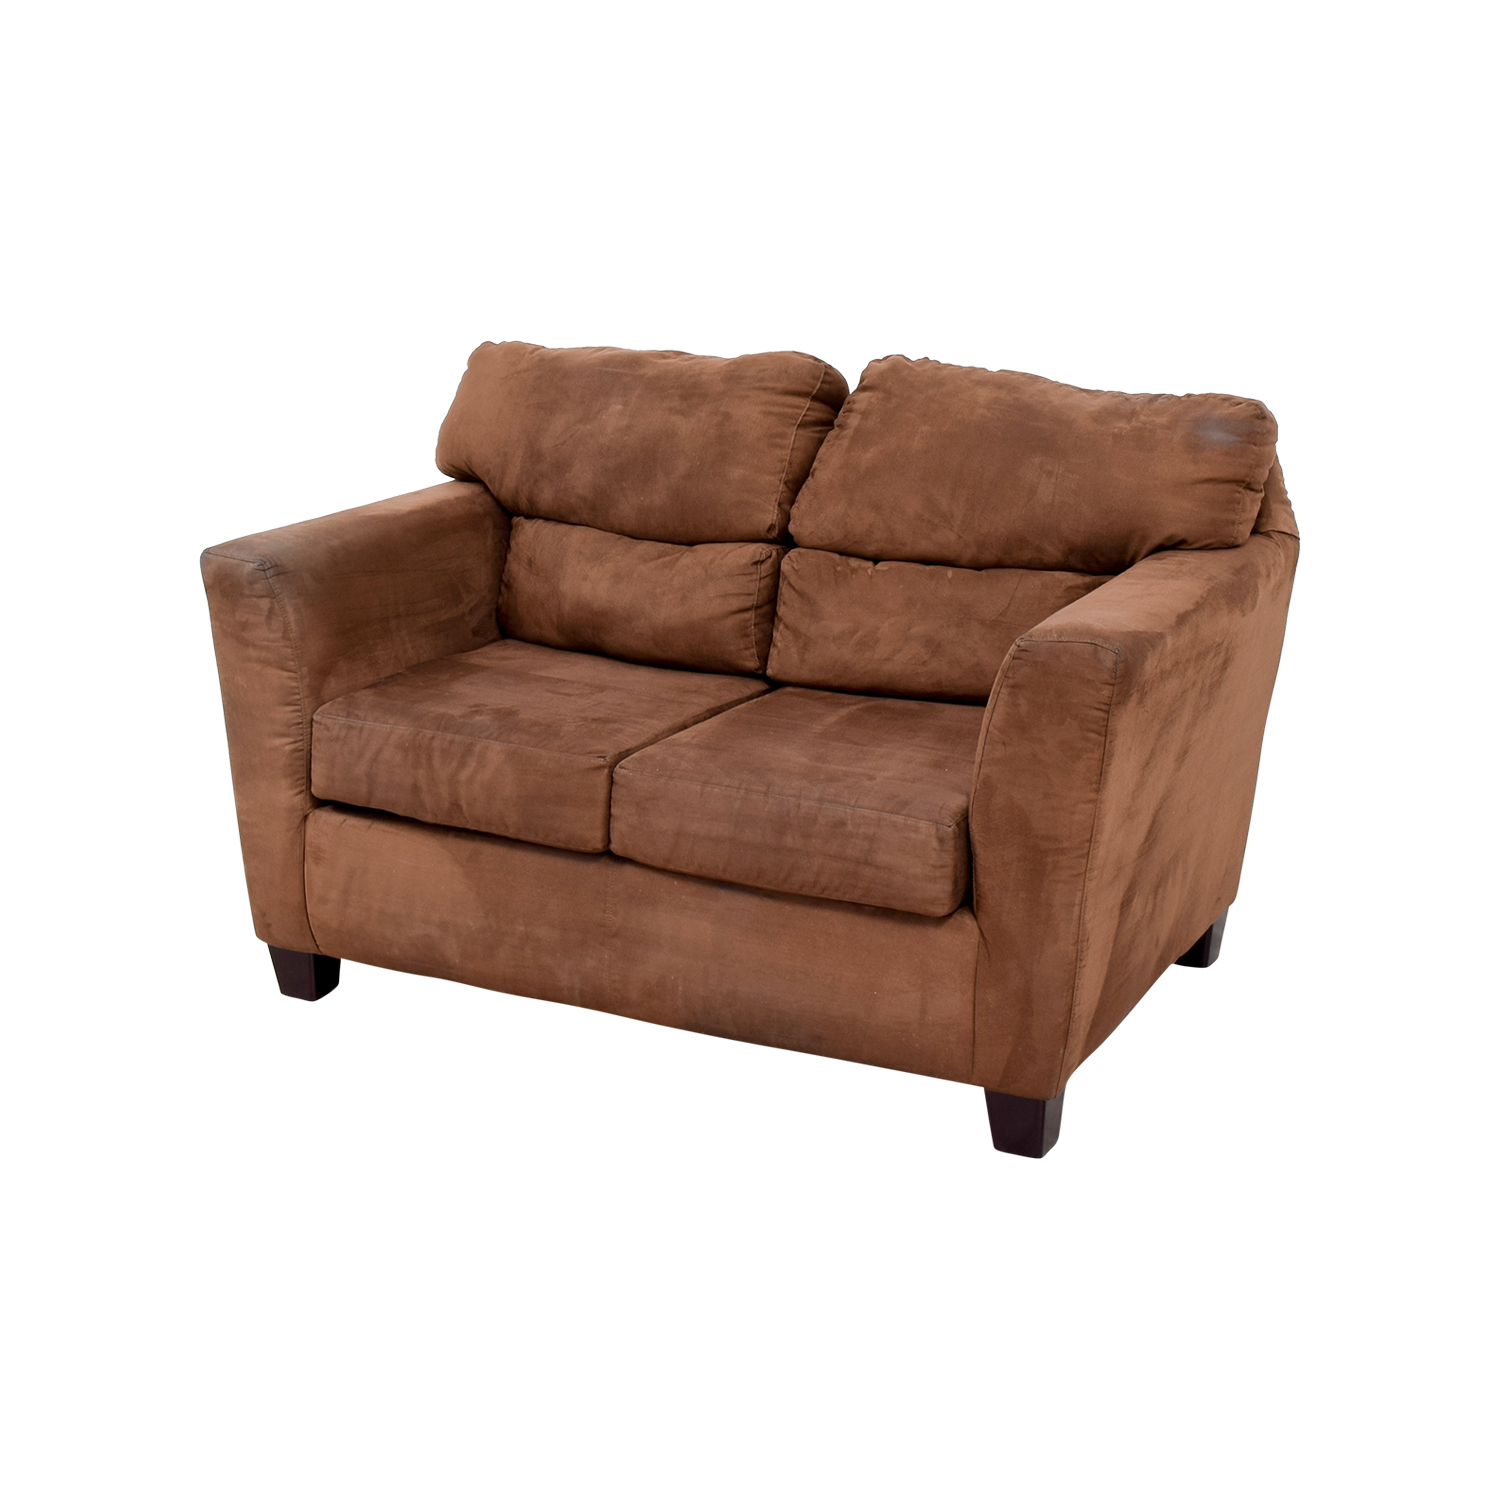 Bobs Furniture Leather Sofa And Loveseat Medium Size Of Living Roombobs Furniture Leather Sofa